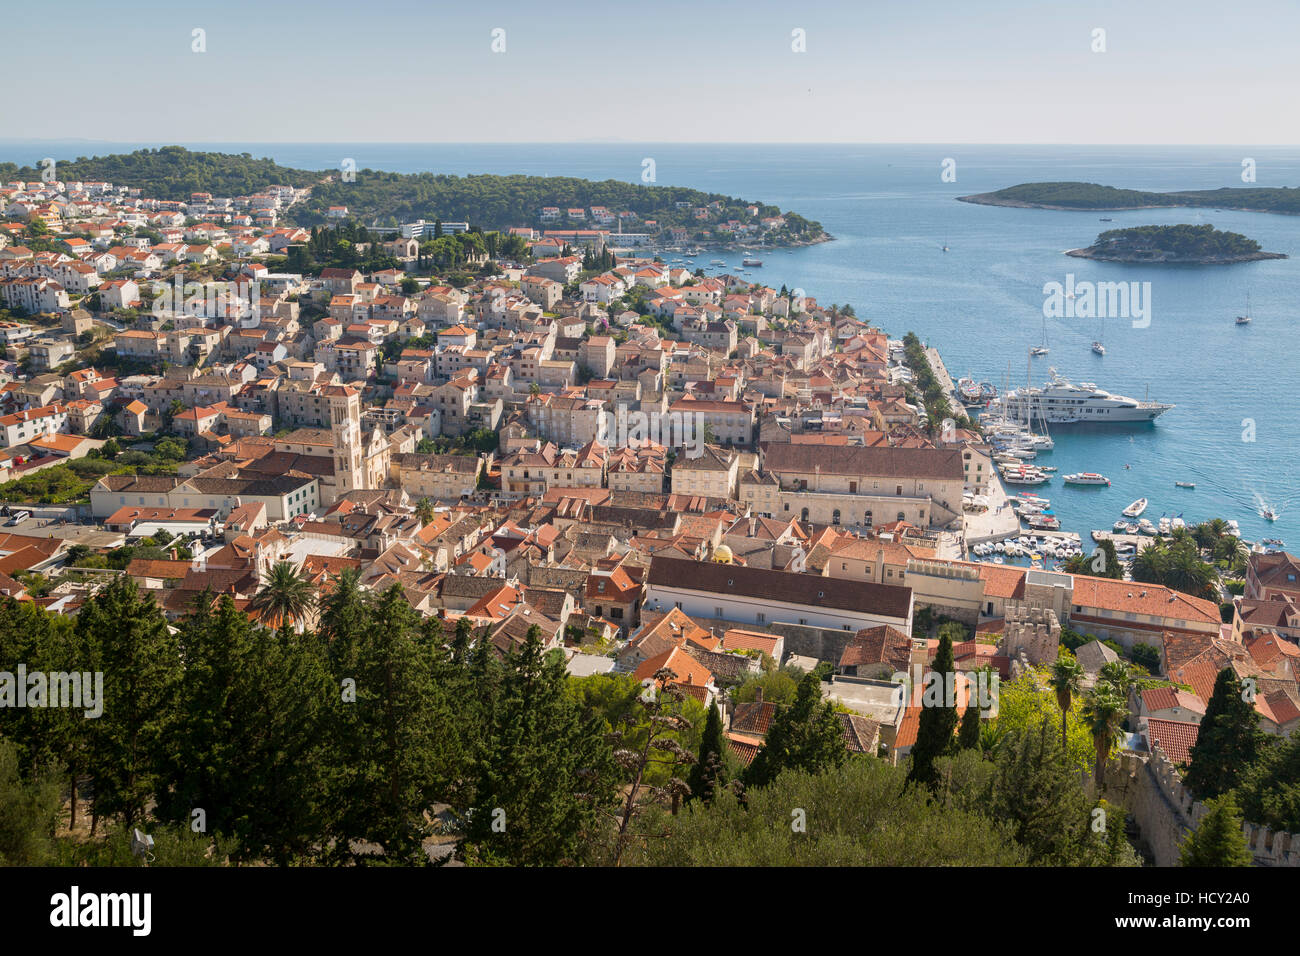 View over Hvar from Spanish Fortress, Hvar Island, Dalmatia, Croatia - Stock Image